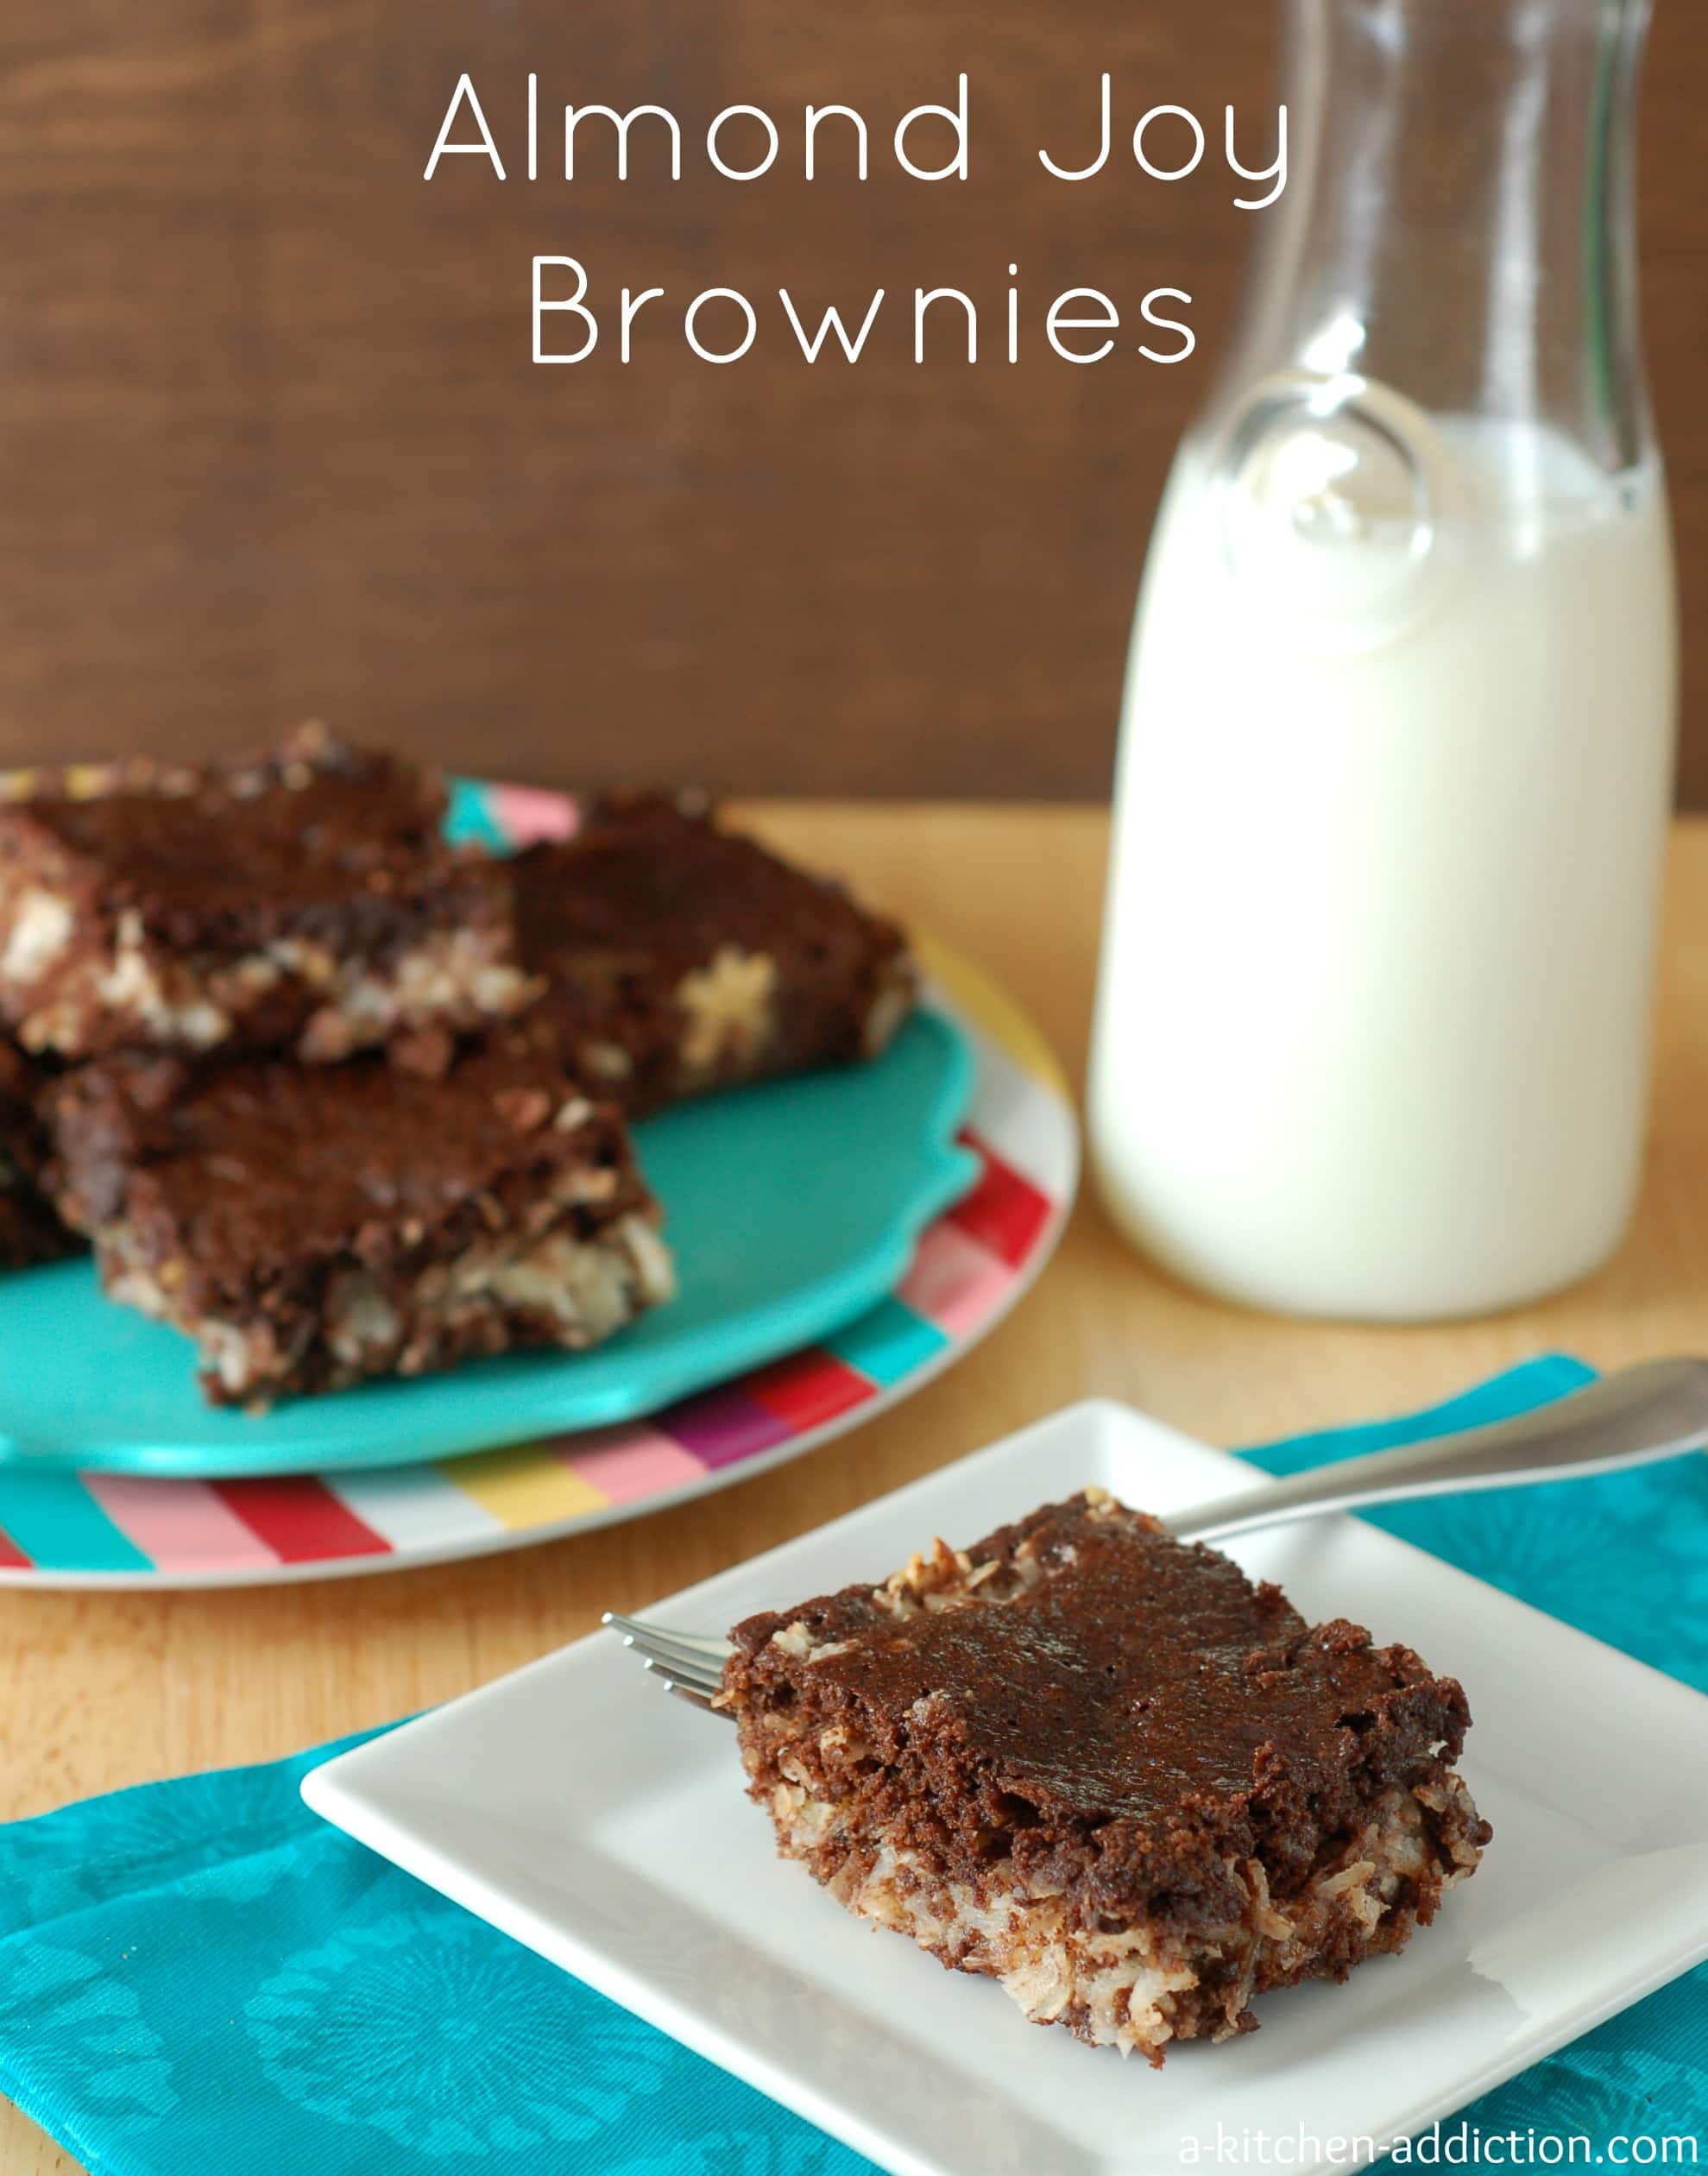 Almond Joy Brownies - A Kitchen Addiction